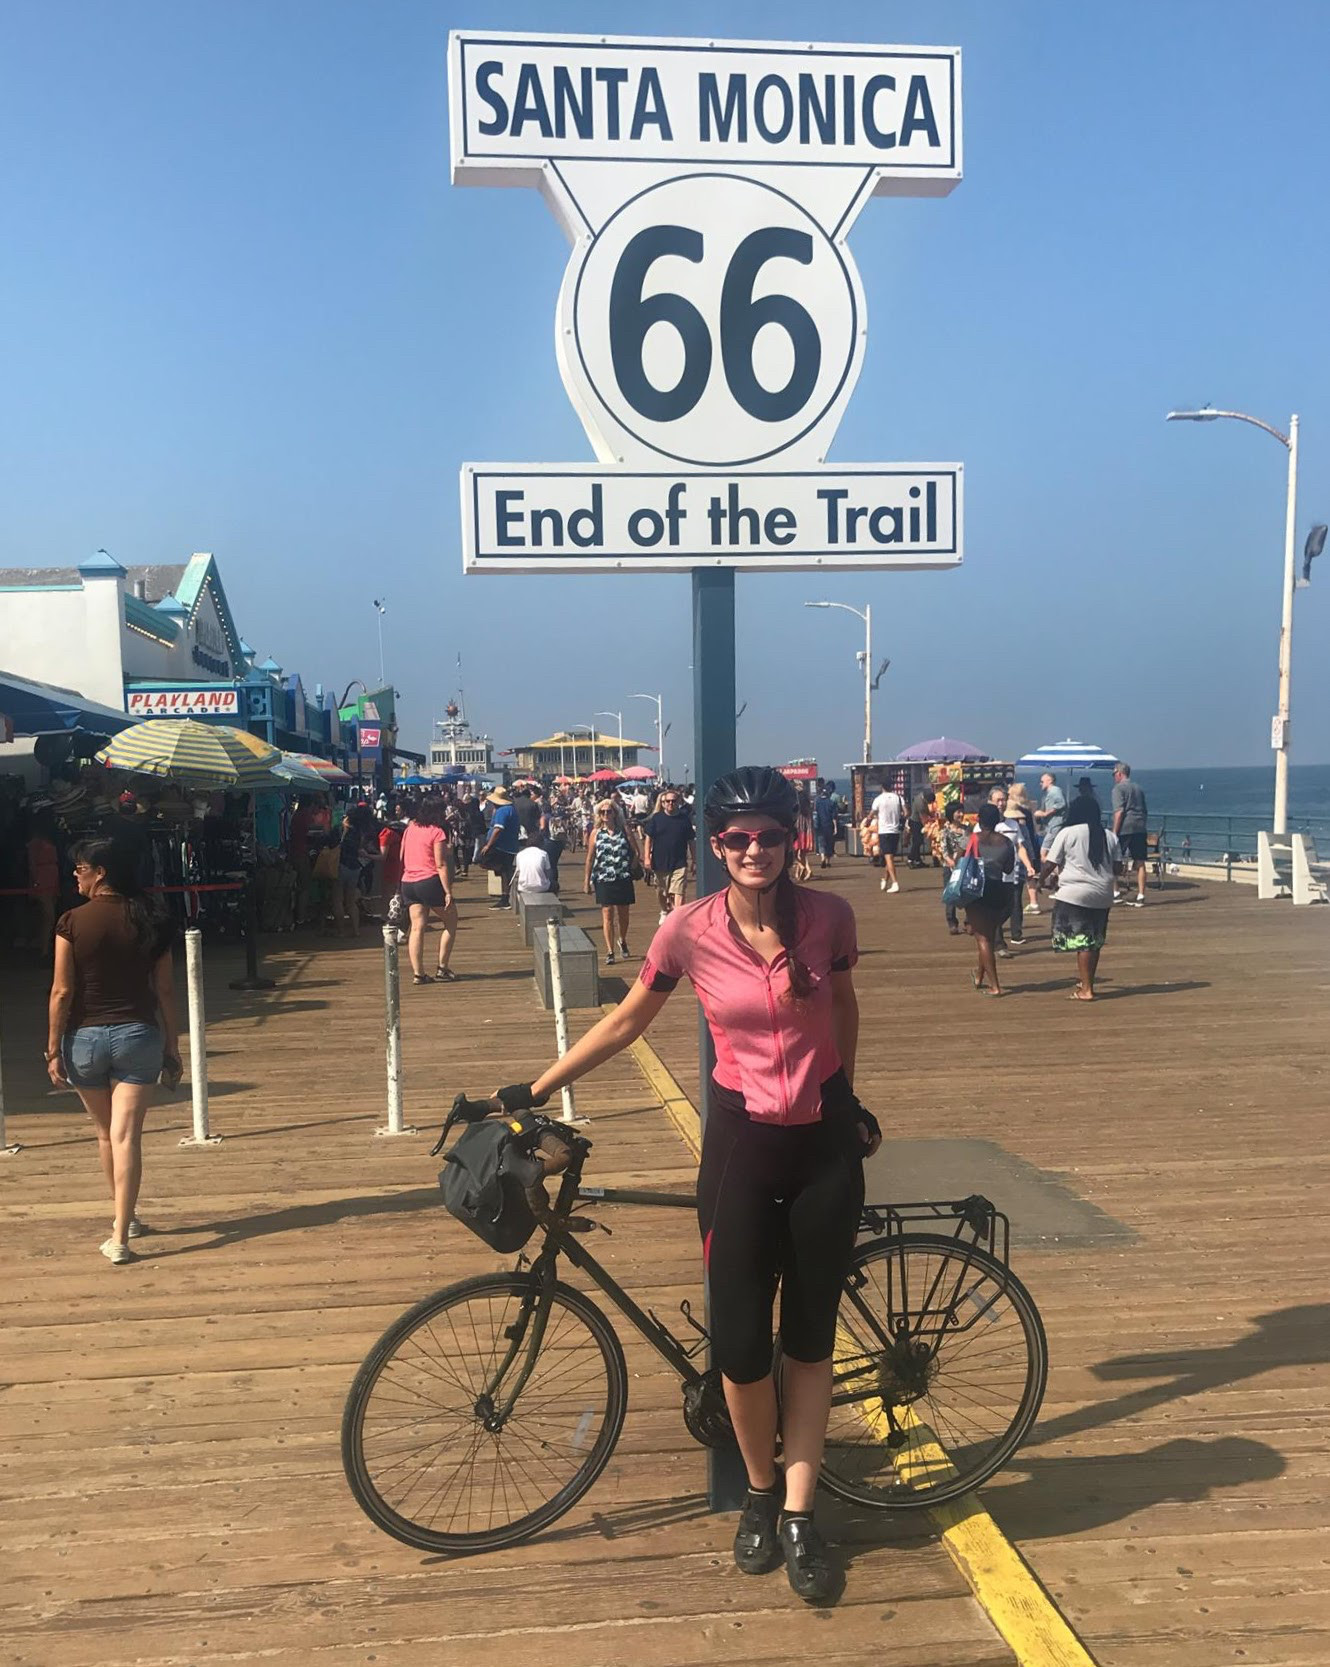 Sarah O'Connor arrived in Santa Monica, Calif. on Sunday after a two-month, cross-country bike trip.